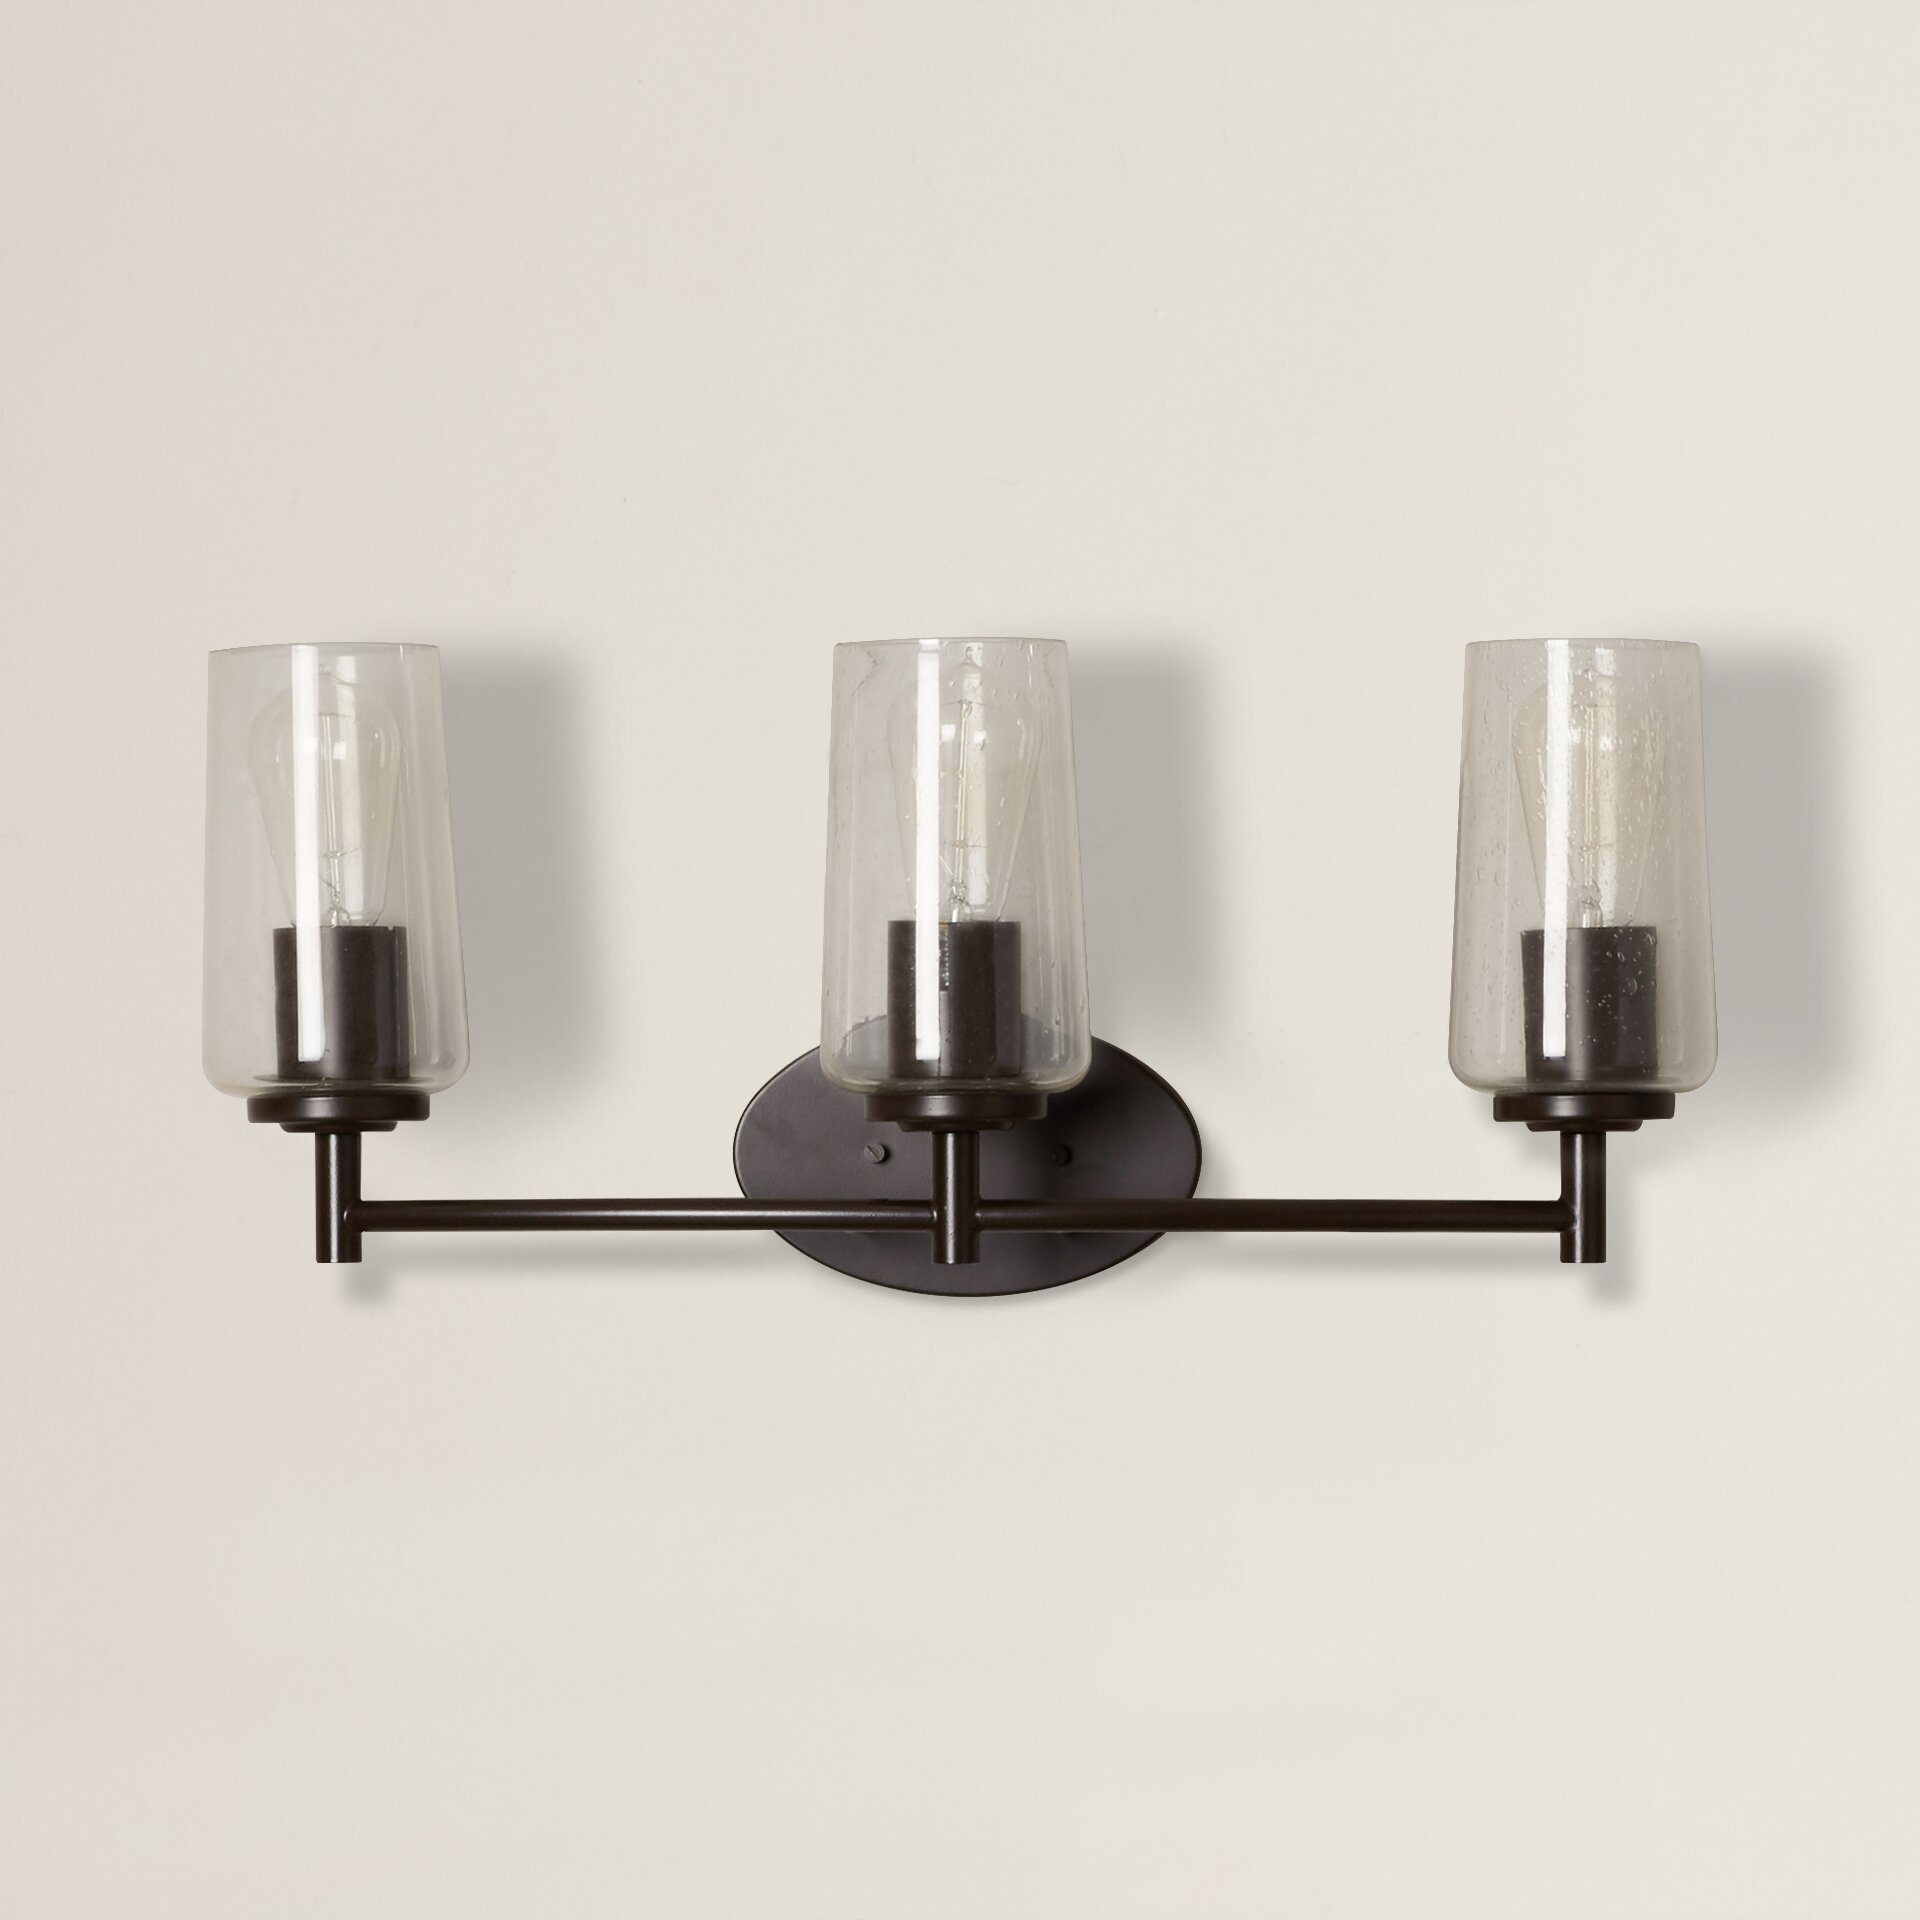 Lighting Wall Lights Bathroom Vanity Lighting Trent Austin Design SKU